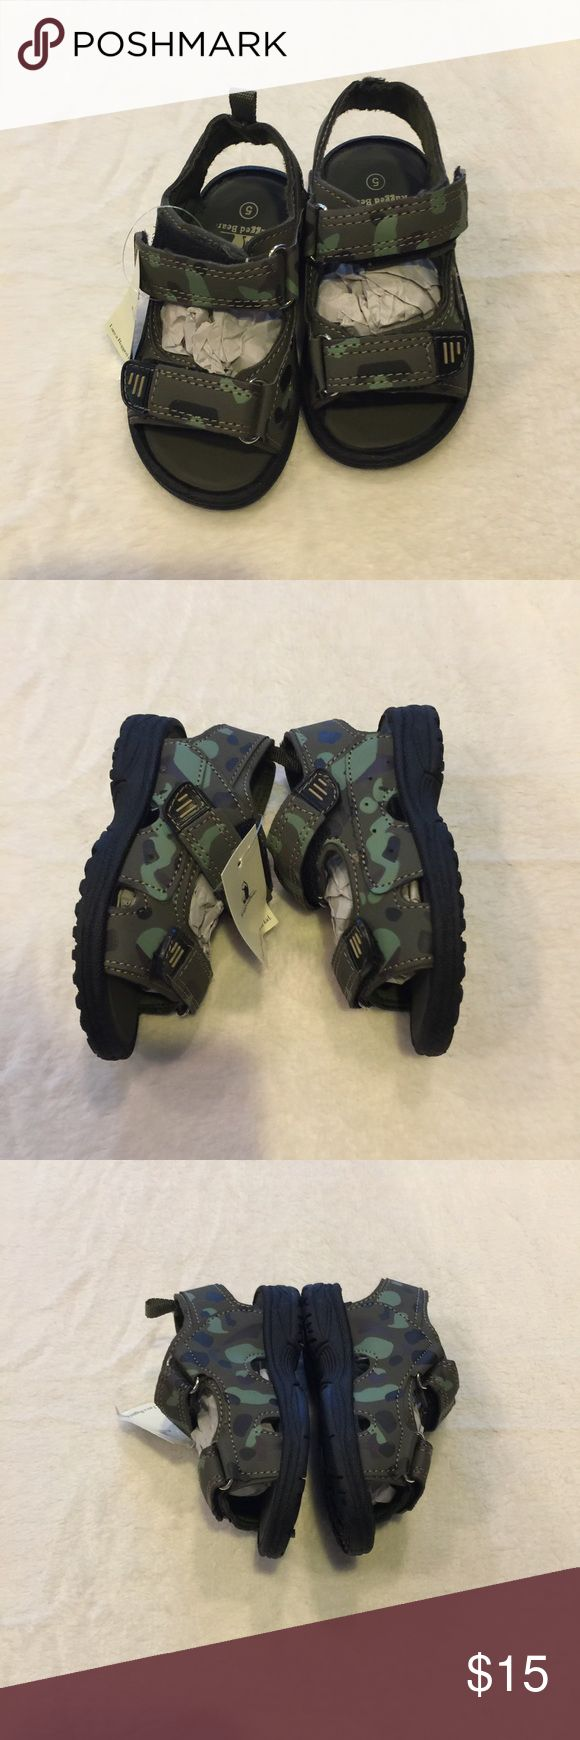 Rugged Bear Velcro Sport Sandals NWT Toddler 5 Rugged Bear Lil Eric Velcro Toddler Sport Sandals NWT! Camo coloring, with greens, brown, & black. Size Toddler 5. Yes, I have the box for these! Rugged Bear Shoes Sandals & Flip Flops